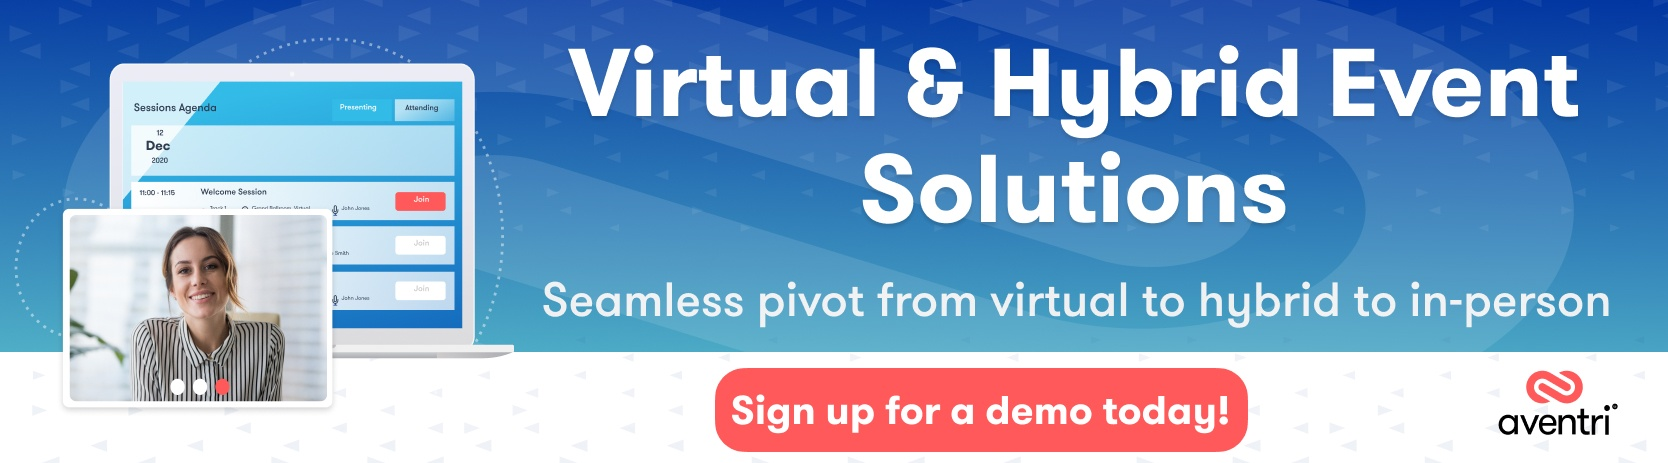 Aventri's virtual & hybrid event solutions | sign up for a demo today!